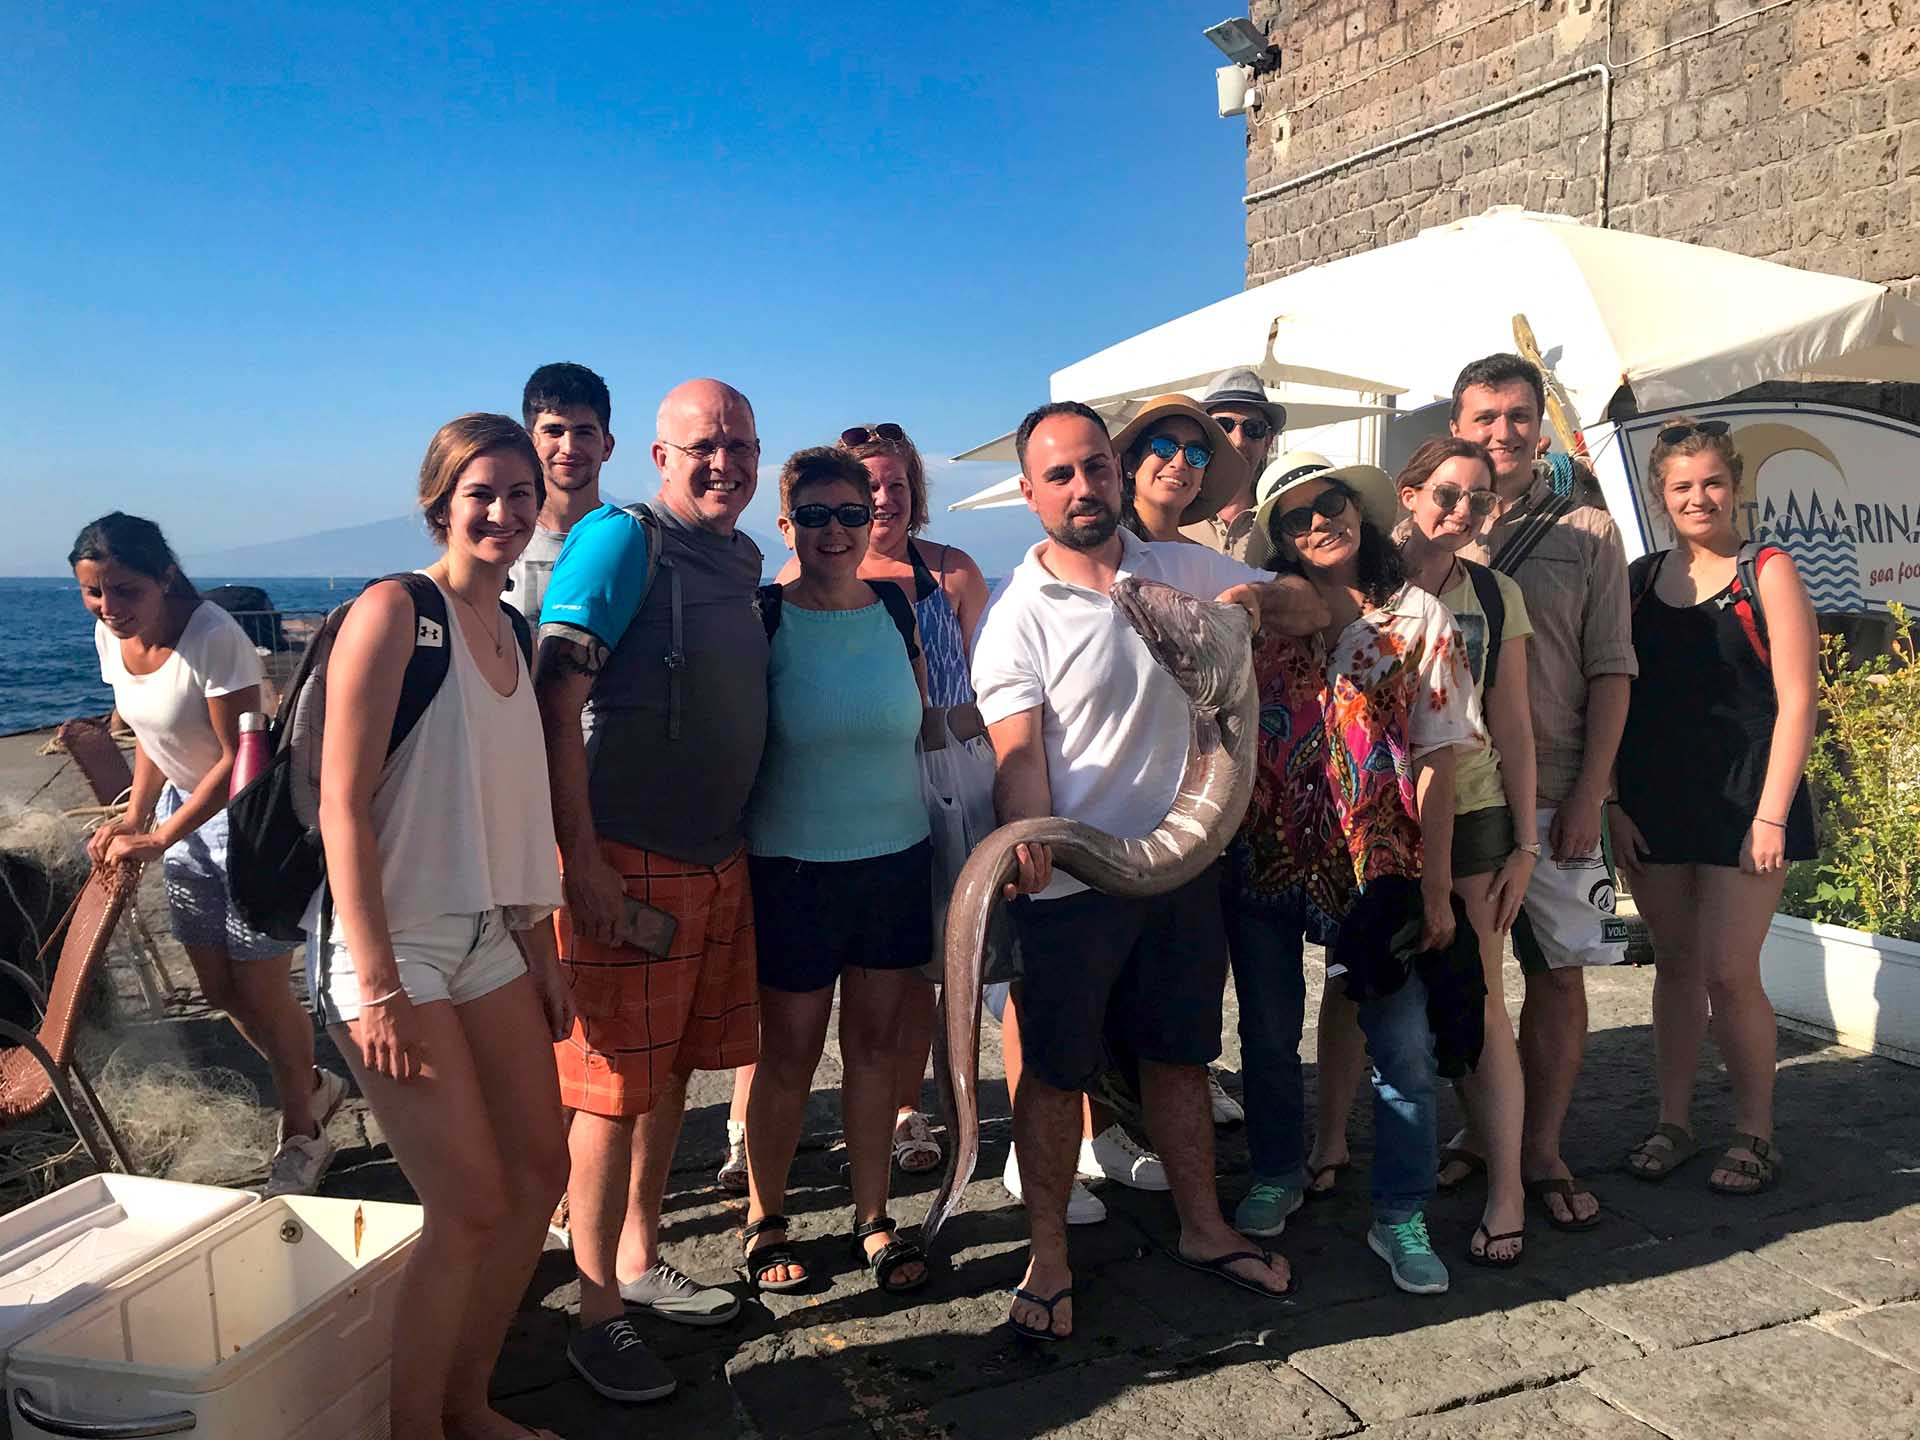 Fisging tour at Capri for groups